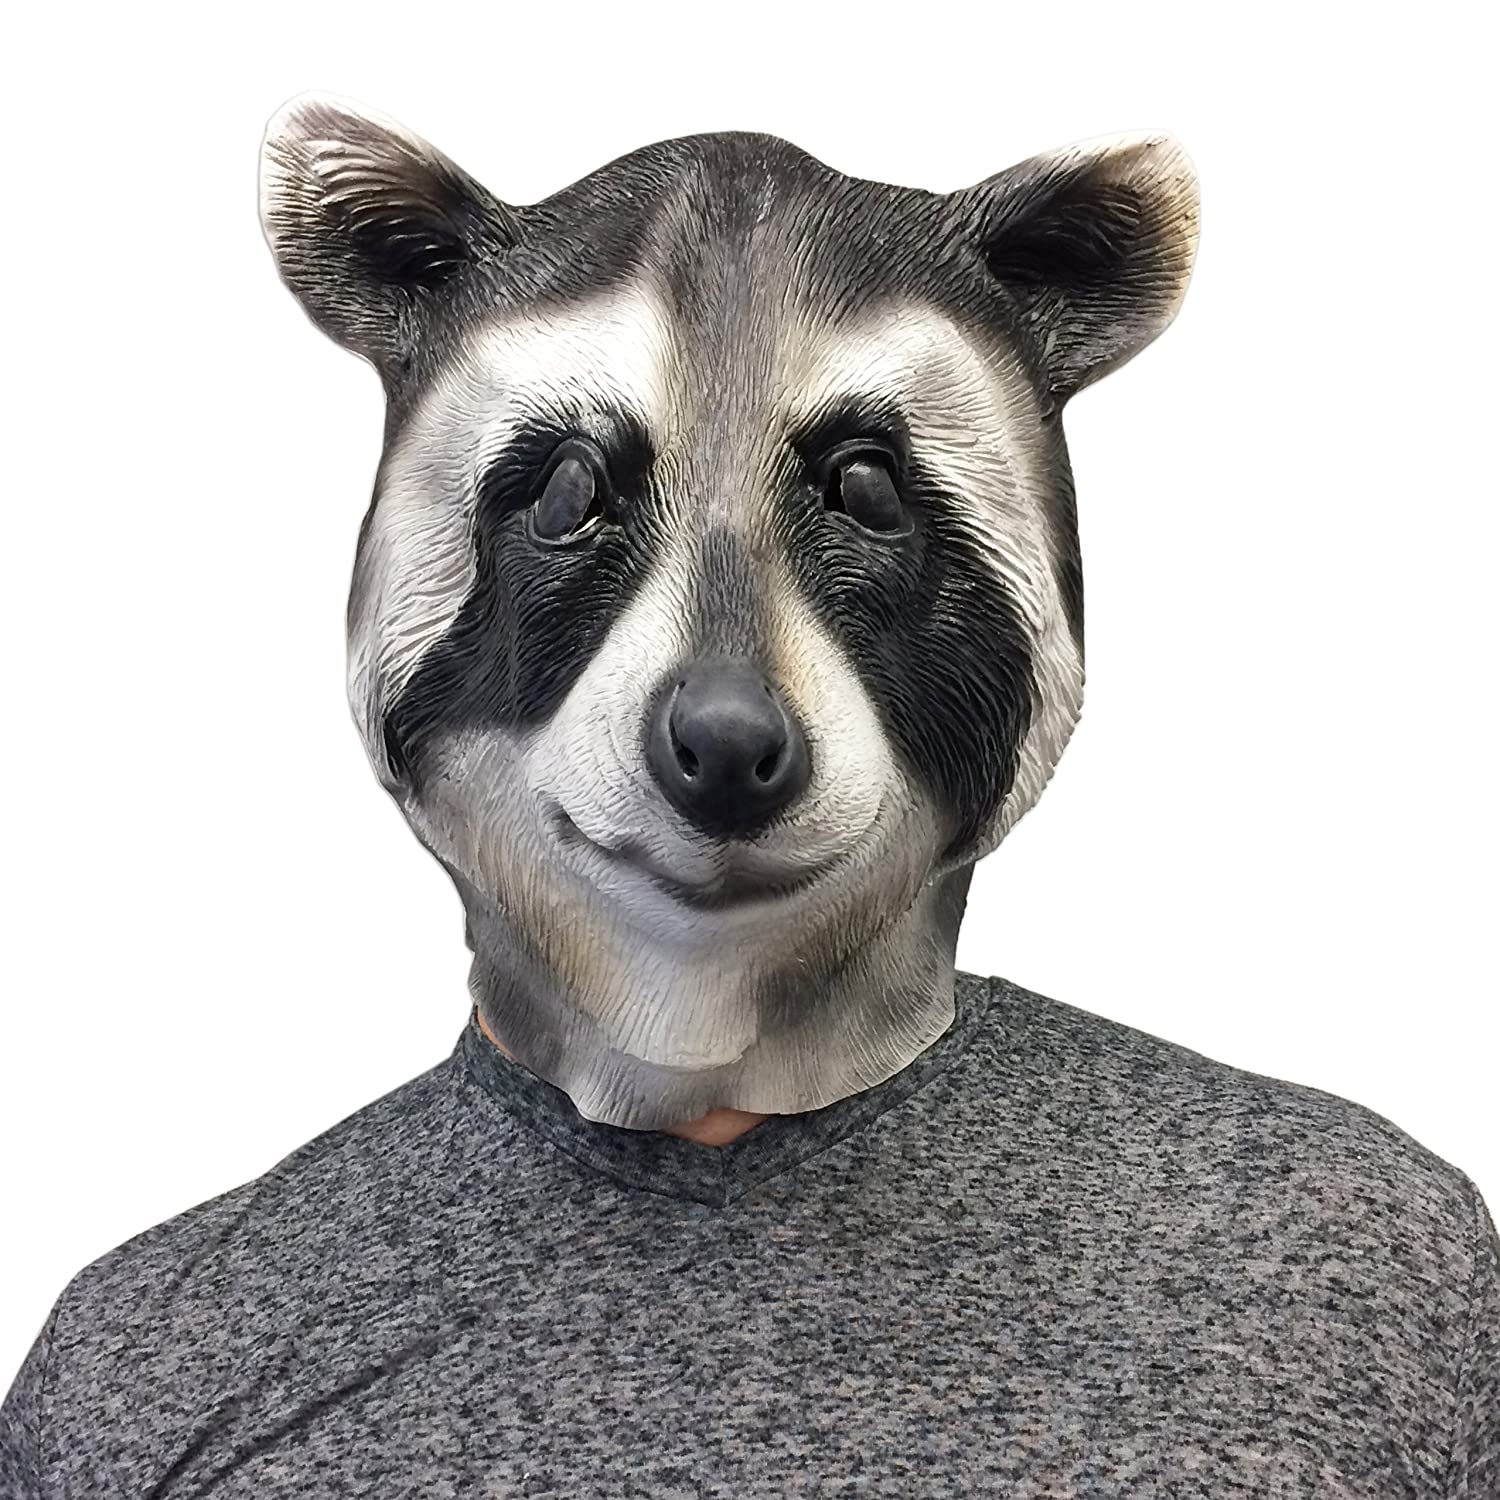 Cool Raccoon Halloween Face Mask - Off the Wall Toys